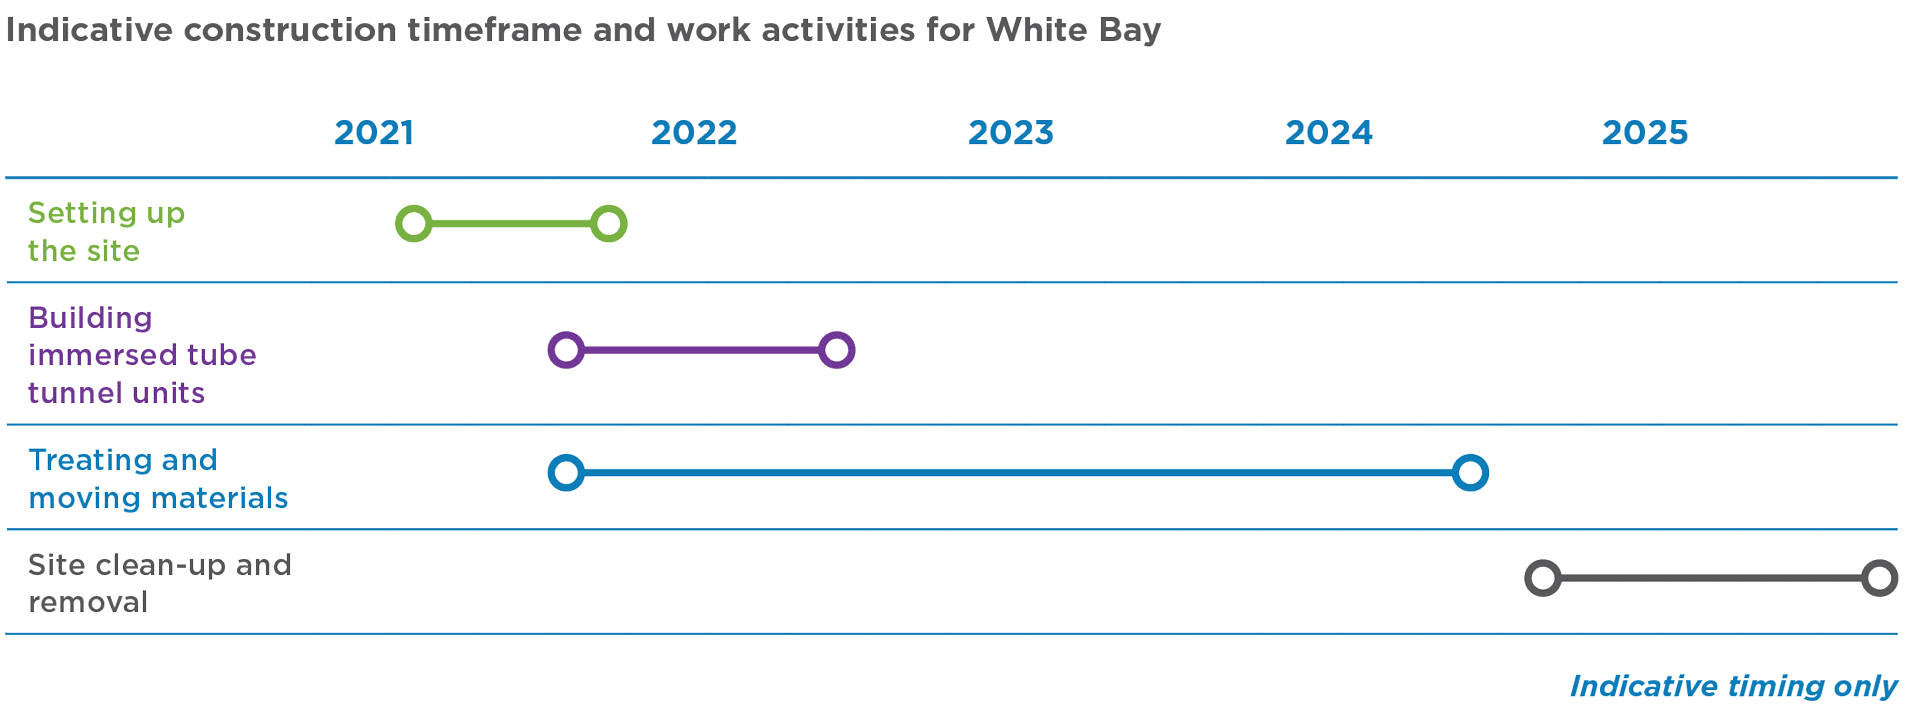 White Bay construction site timeline